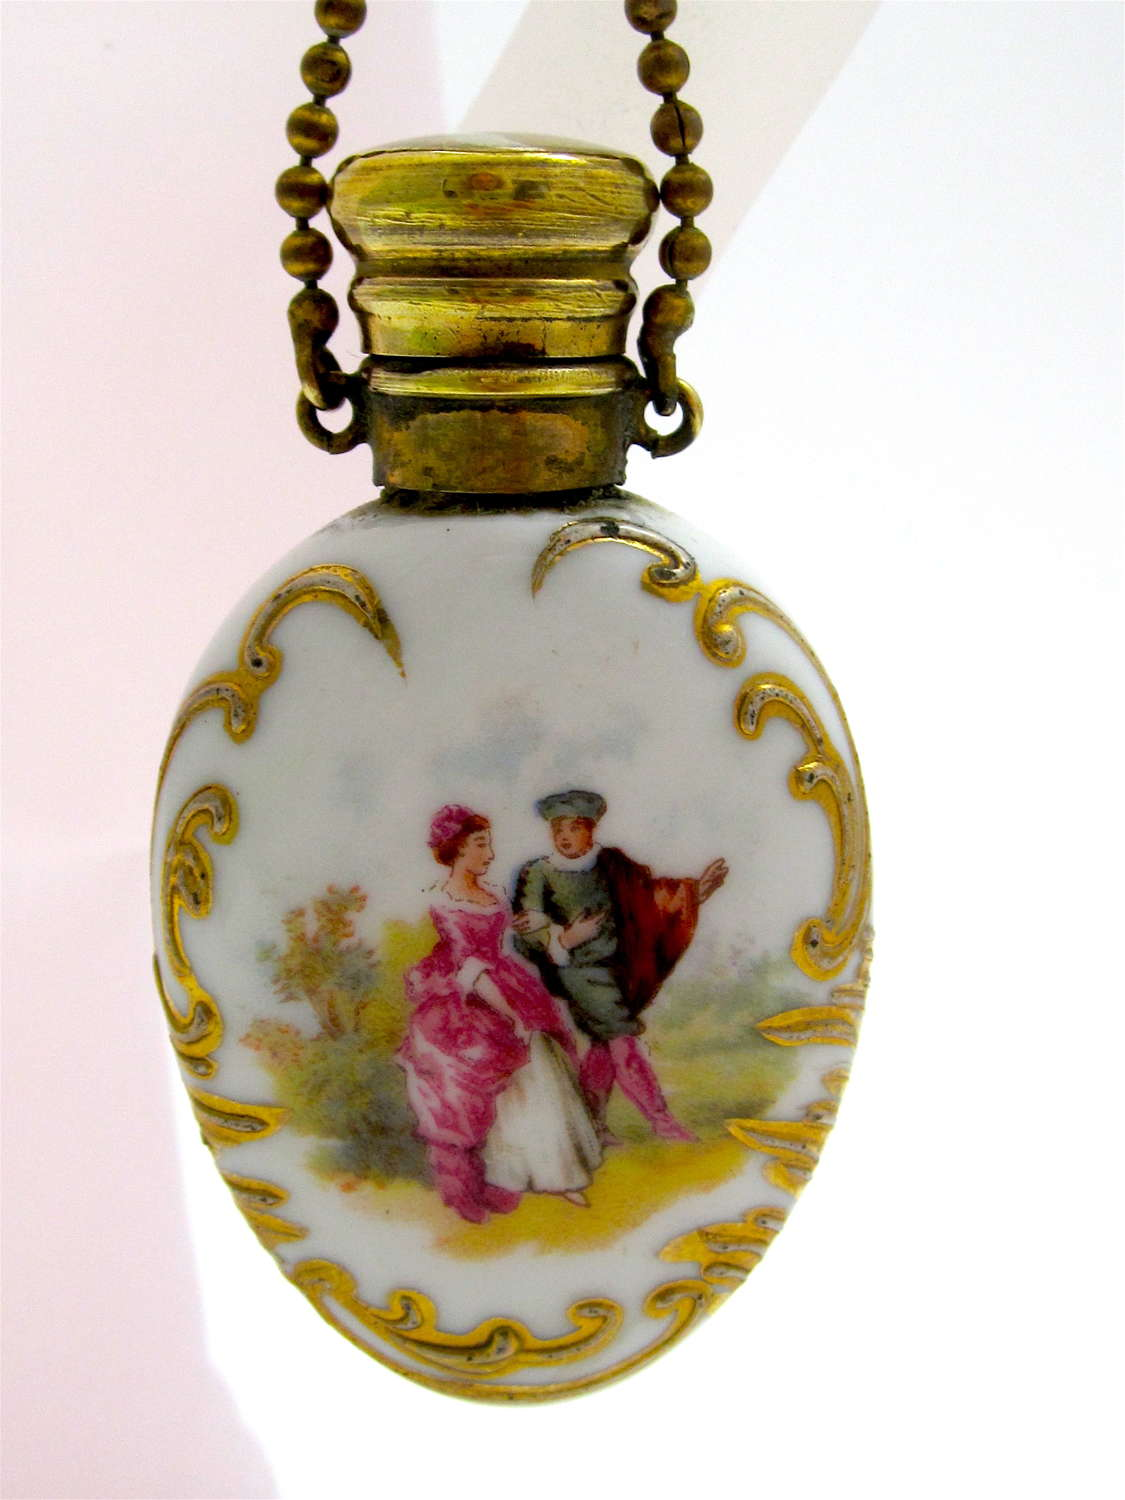 Antique French PorcelainPerfume Bottle with Courting Couple